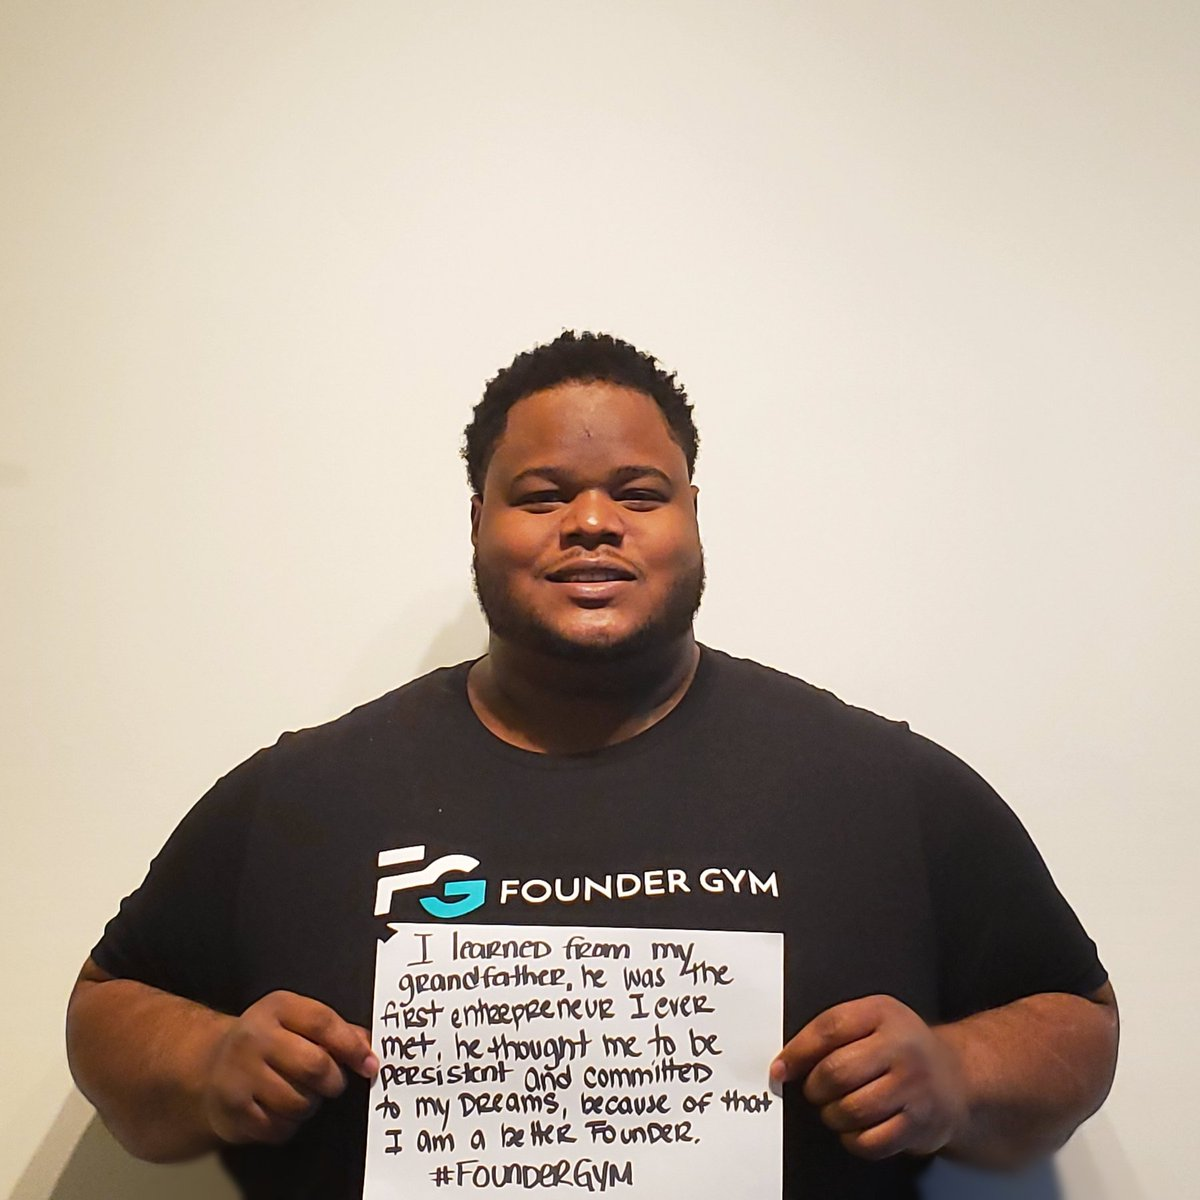 At @foundergym, my differences are valued as strengths. #foundergym